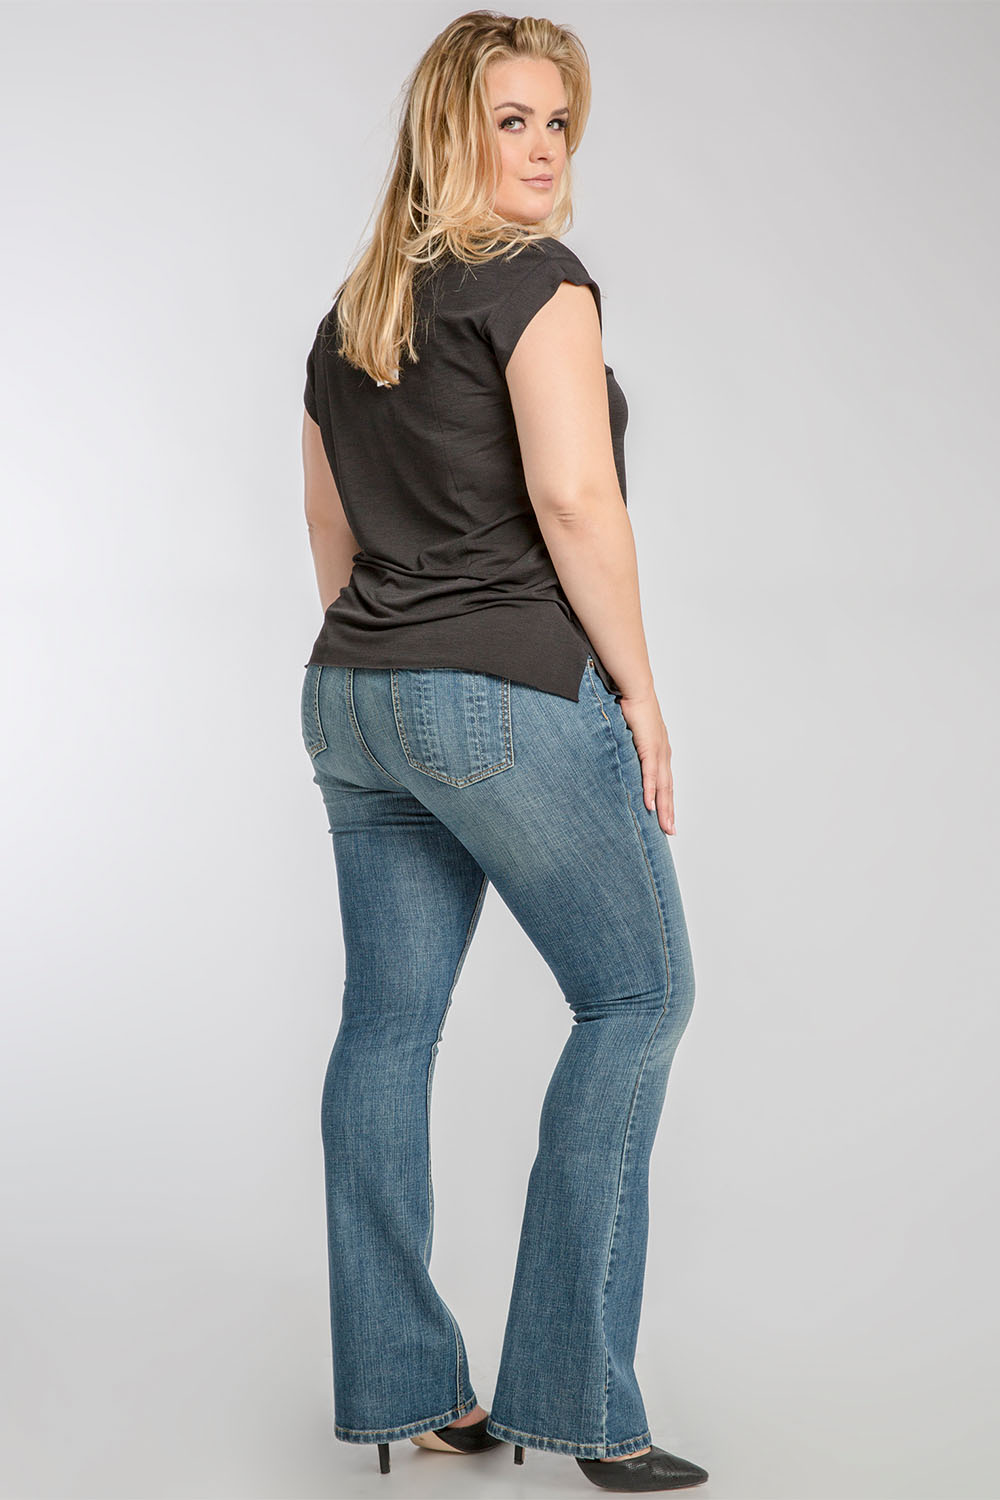 Plus Size Clarice Stretch Woven Blue Bone Midrise Bootcut Jeans